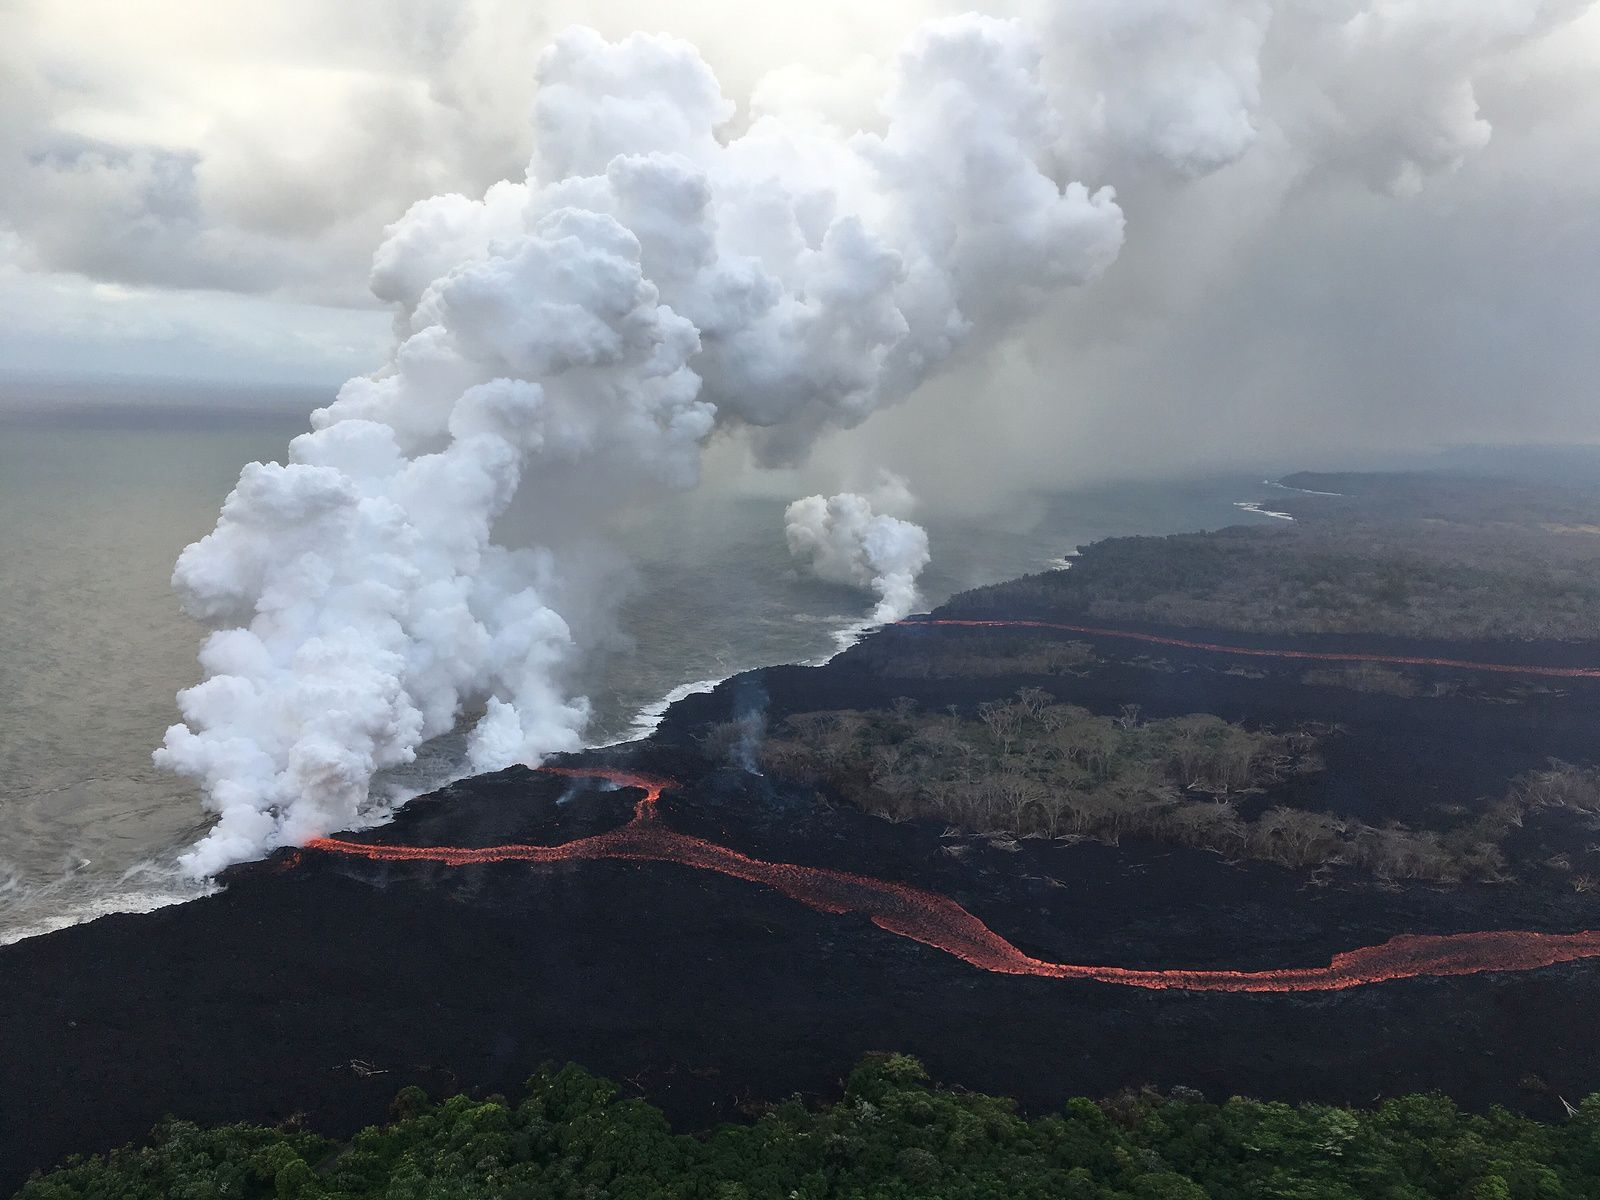 Kilauea East Rift Zone: Two channeled streams fuel three lava inlets in the ocean - Photo USGS / M.Patrick 24,05,2018